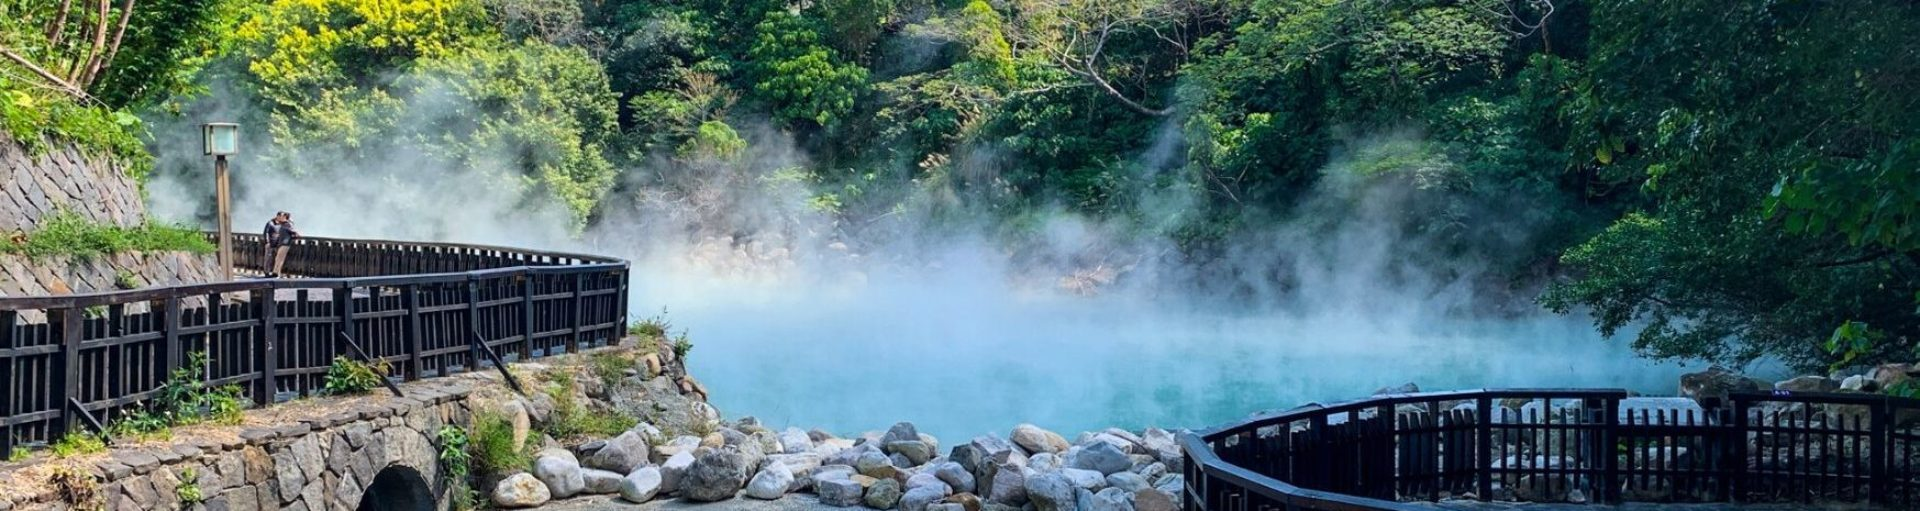 Beitou, the hot springs of Taipei